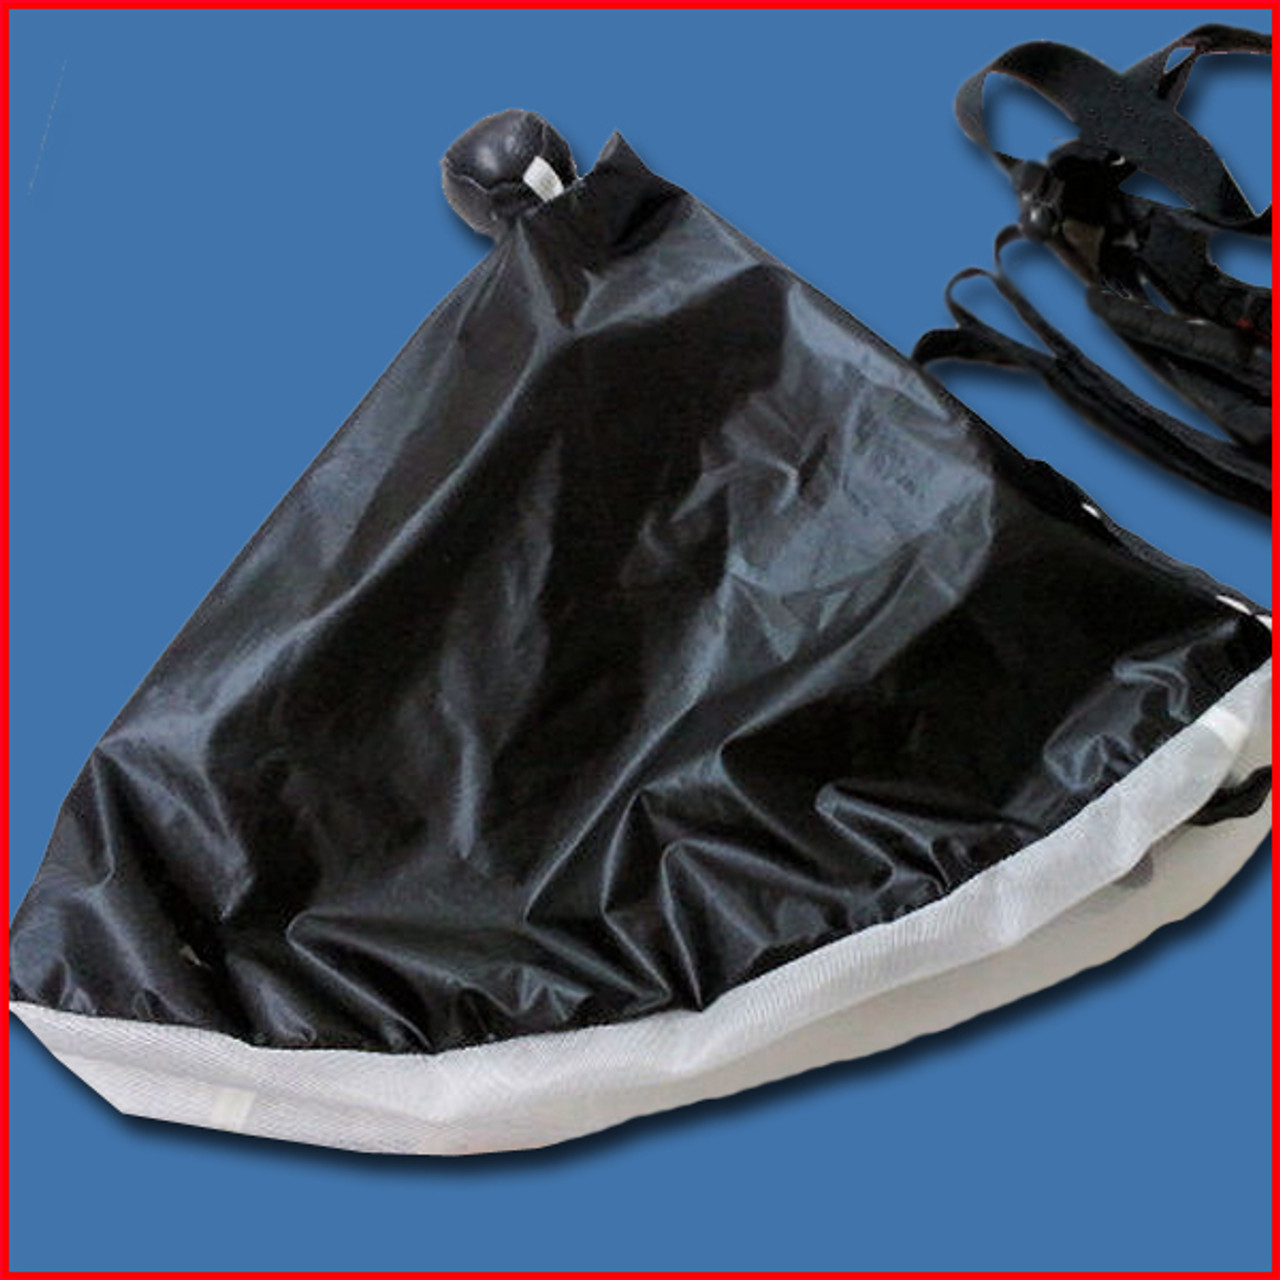 Collapsible Pilot Chute by Chernis (ZP) Black with Black Hacky (In Stock)